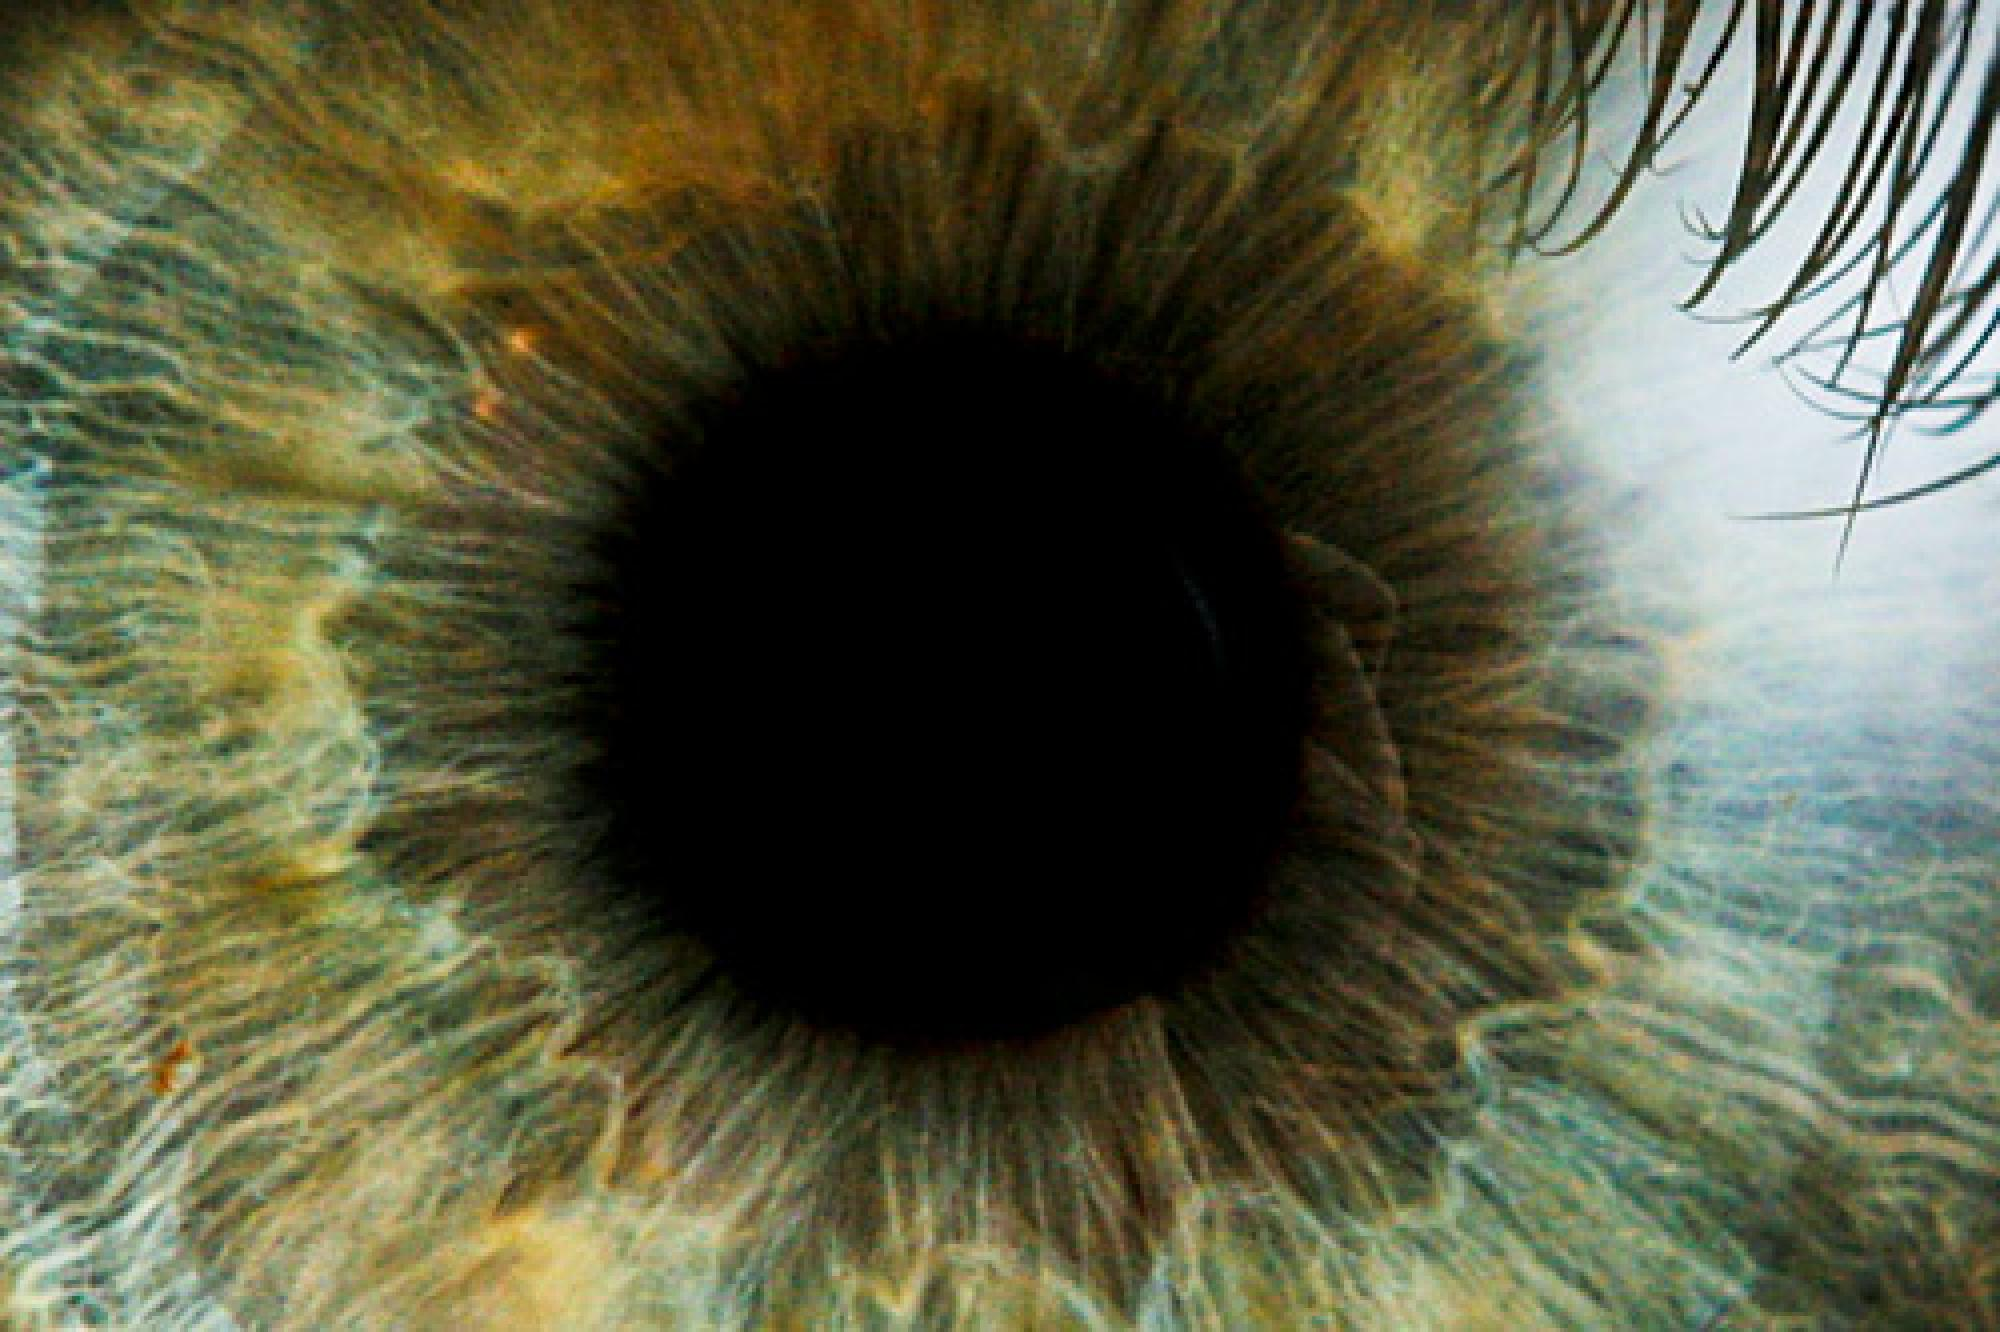 According to the Glaucoma Research Foundation, glaucoma is a leading cause of blindness, there is no cure, everyone is at risk, and there may be no symptoms to warn you. More than 4 million Americans have glaucoma but only half know they have it.